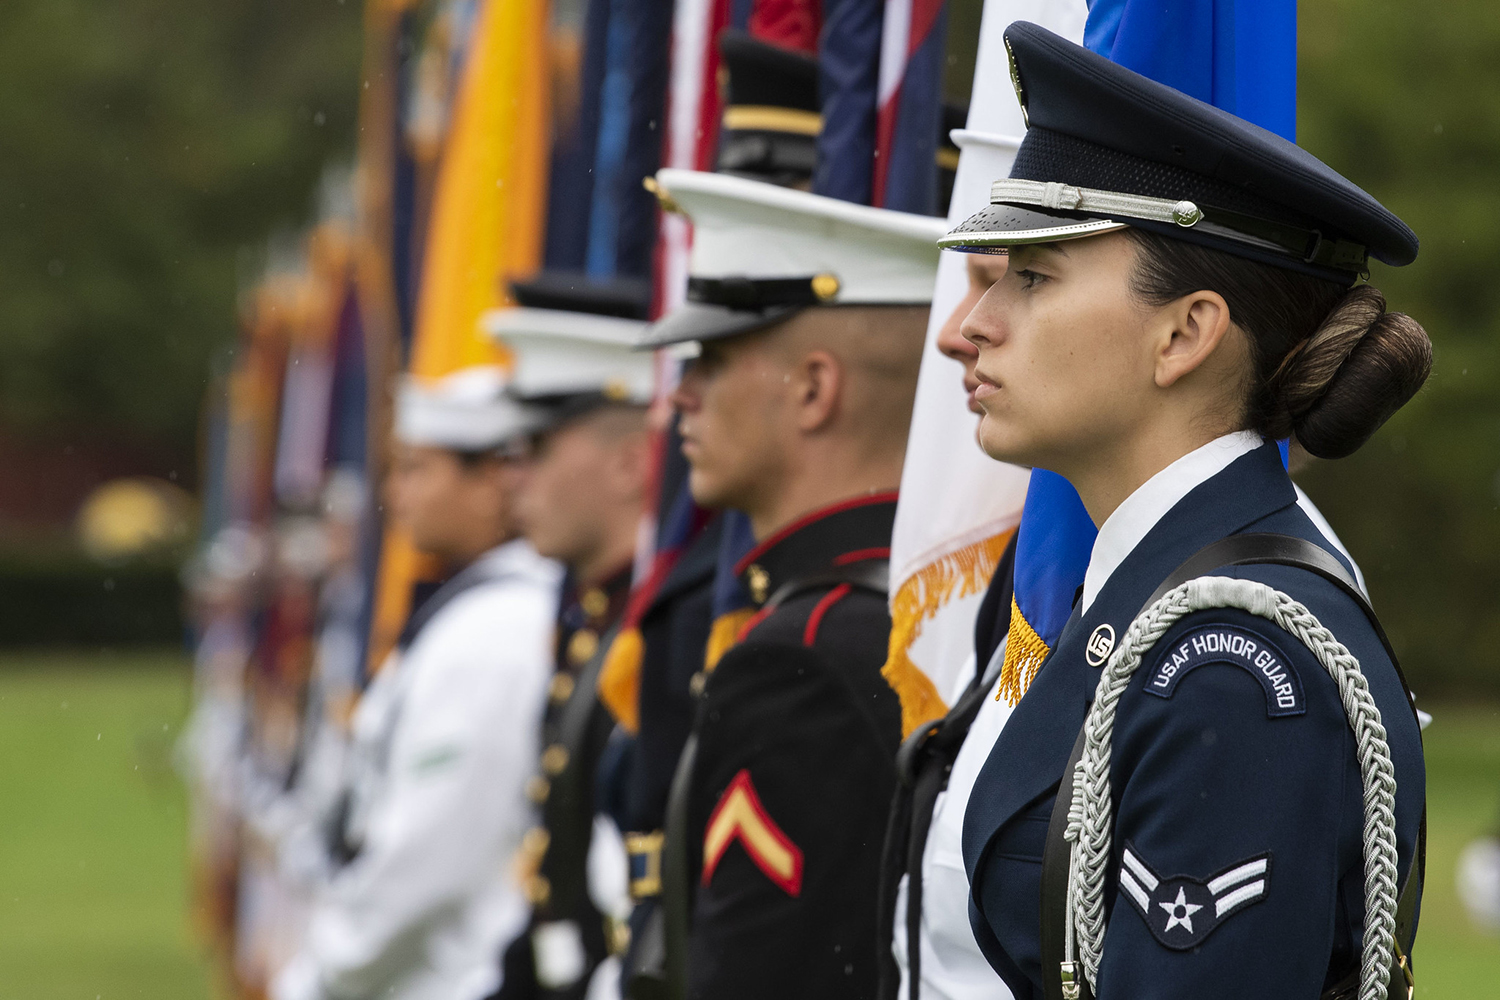 Members of the Joint Armed Forces Honor Guard take part in an armed forces welcome ceremony for the new chairman of the Joint Chiefs of Staff, Army Gen. Mark A. Milley,at Joint Base Myer-Henderson Hall, Va., Sept. 30, 2019. (Lisa Ferdinando/DoD)